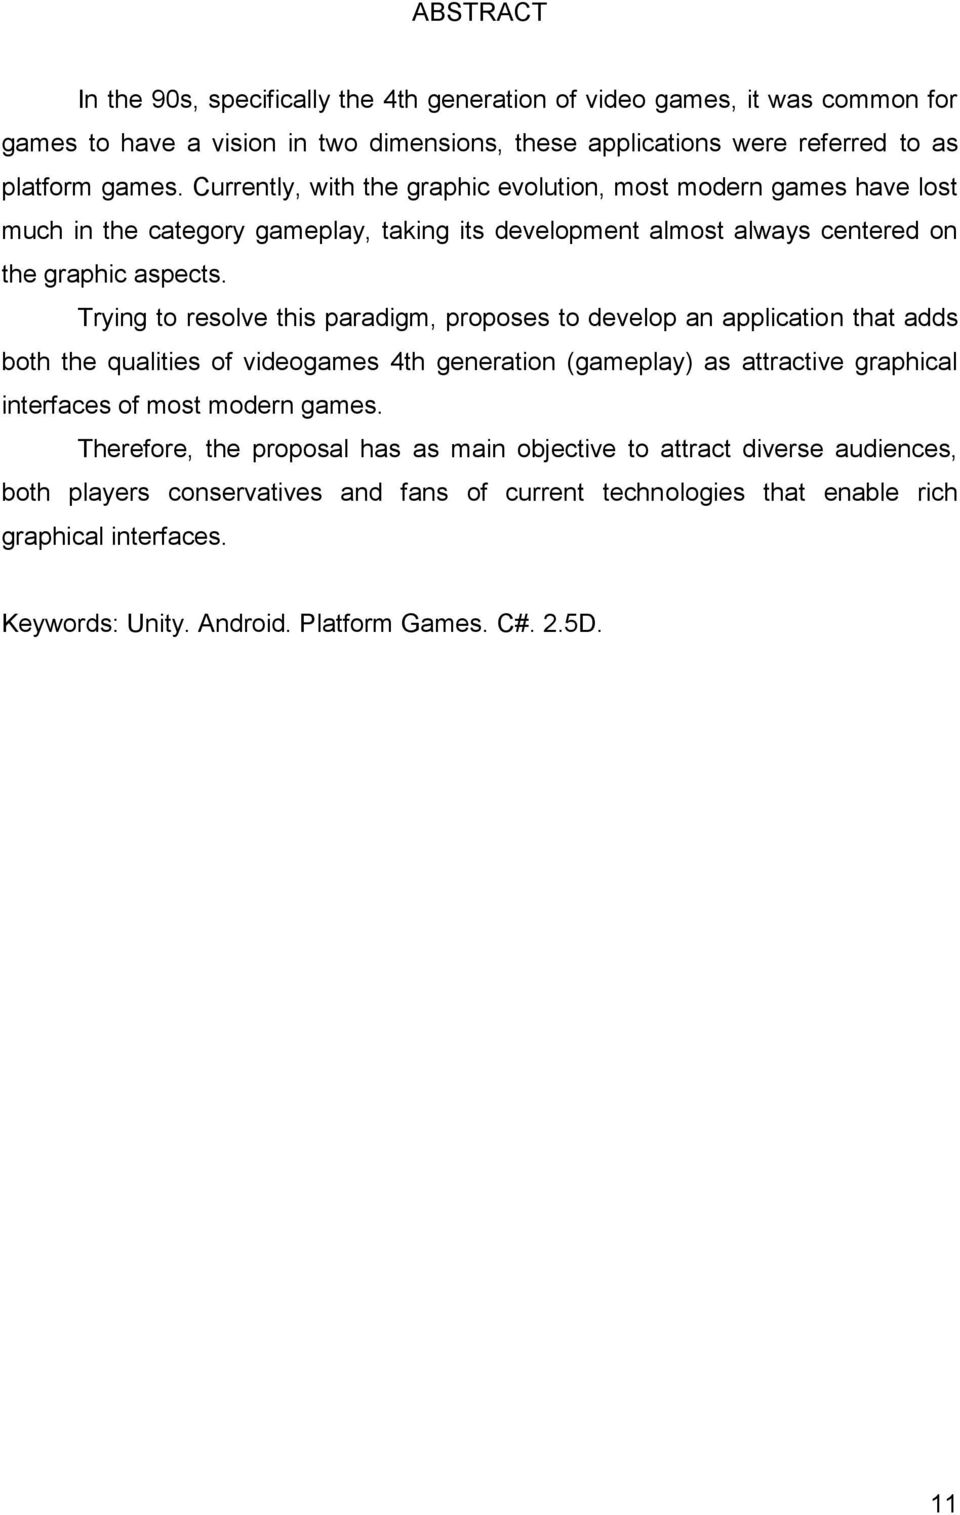 Trying to resolve this paradigm, proposes to develop an application that adds both the qualities of videogames 4th generation (gameplay) as attractive graphical interfaces of most modern games.